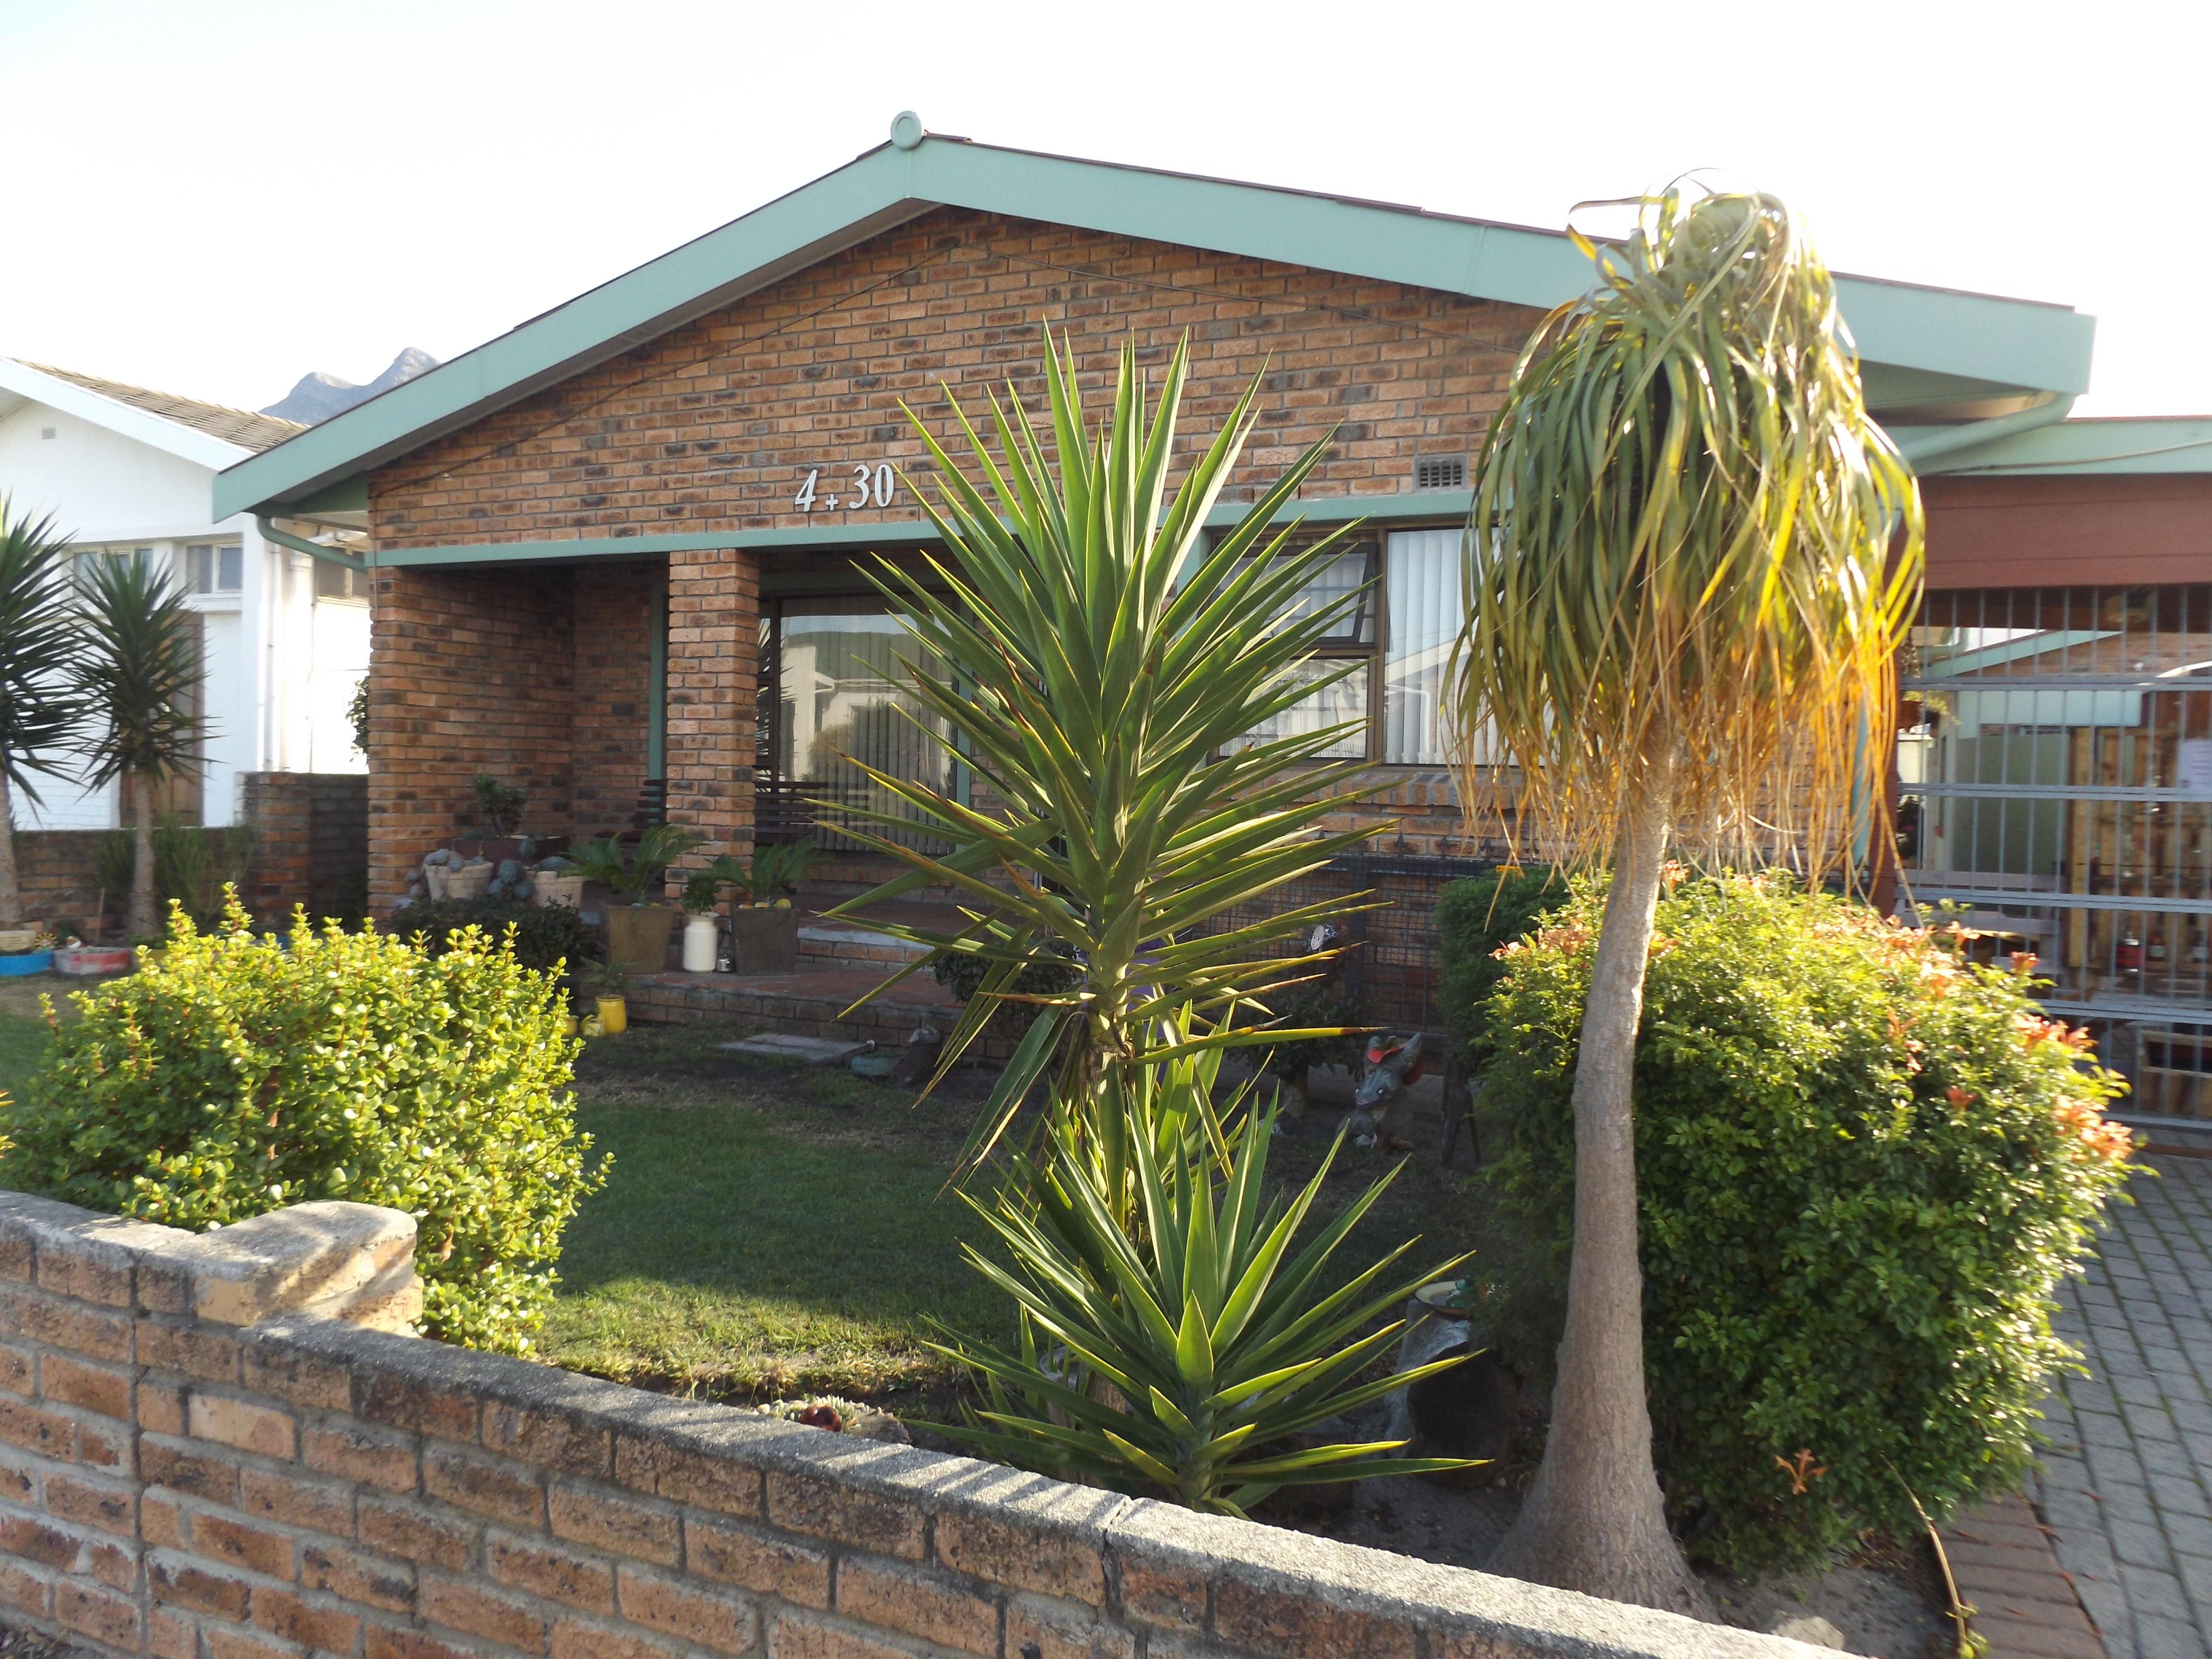 3 Bedroom house with flatlet for sale in Kleinmond